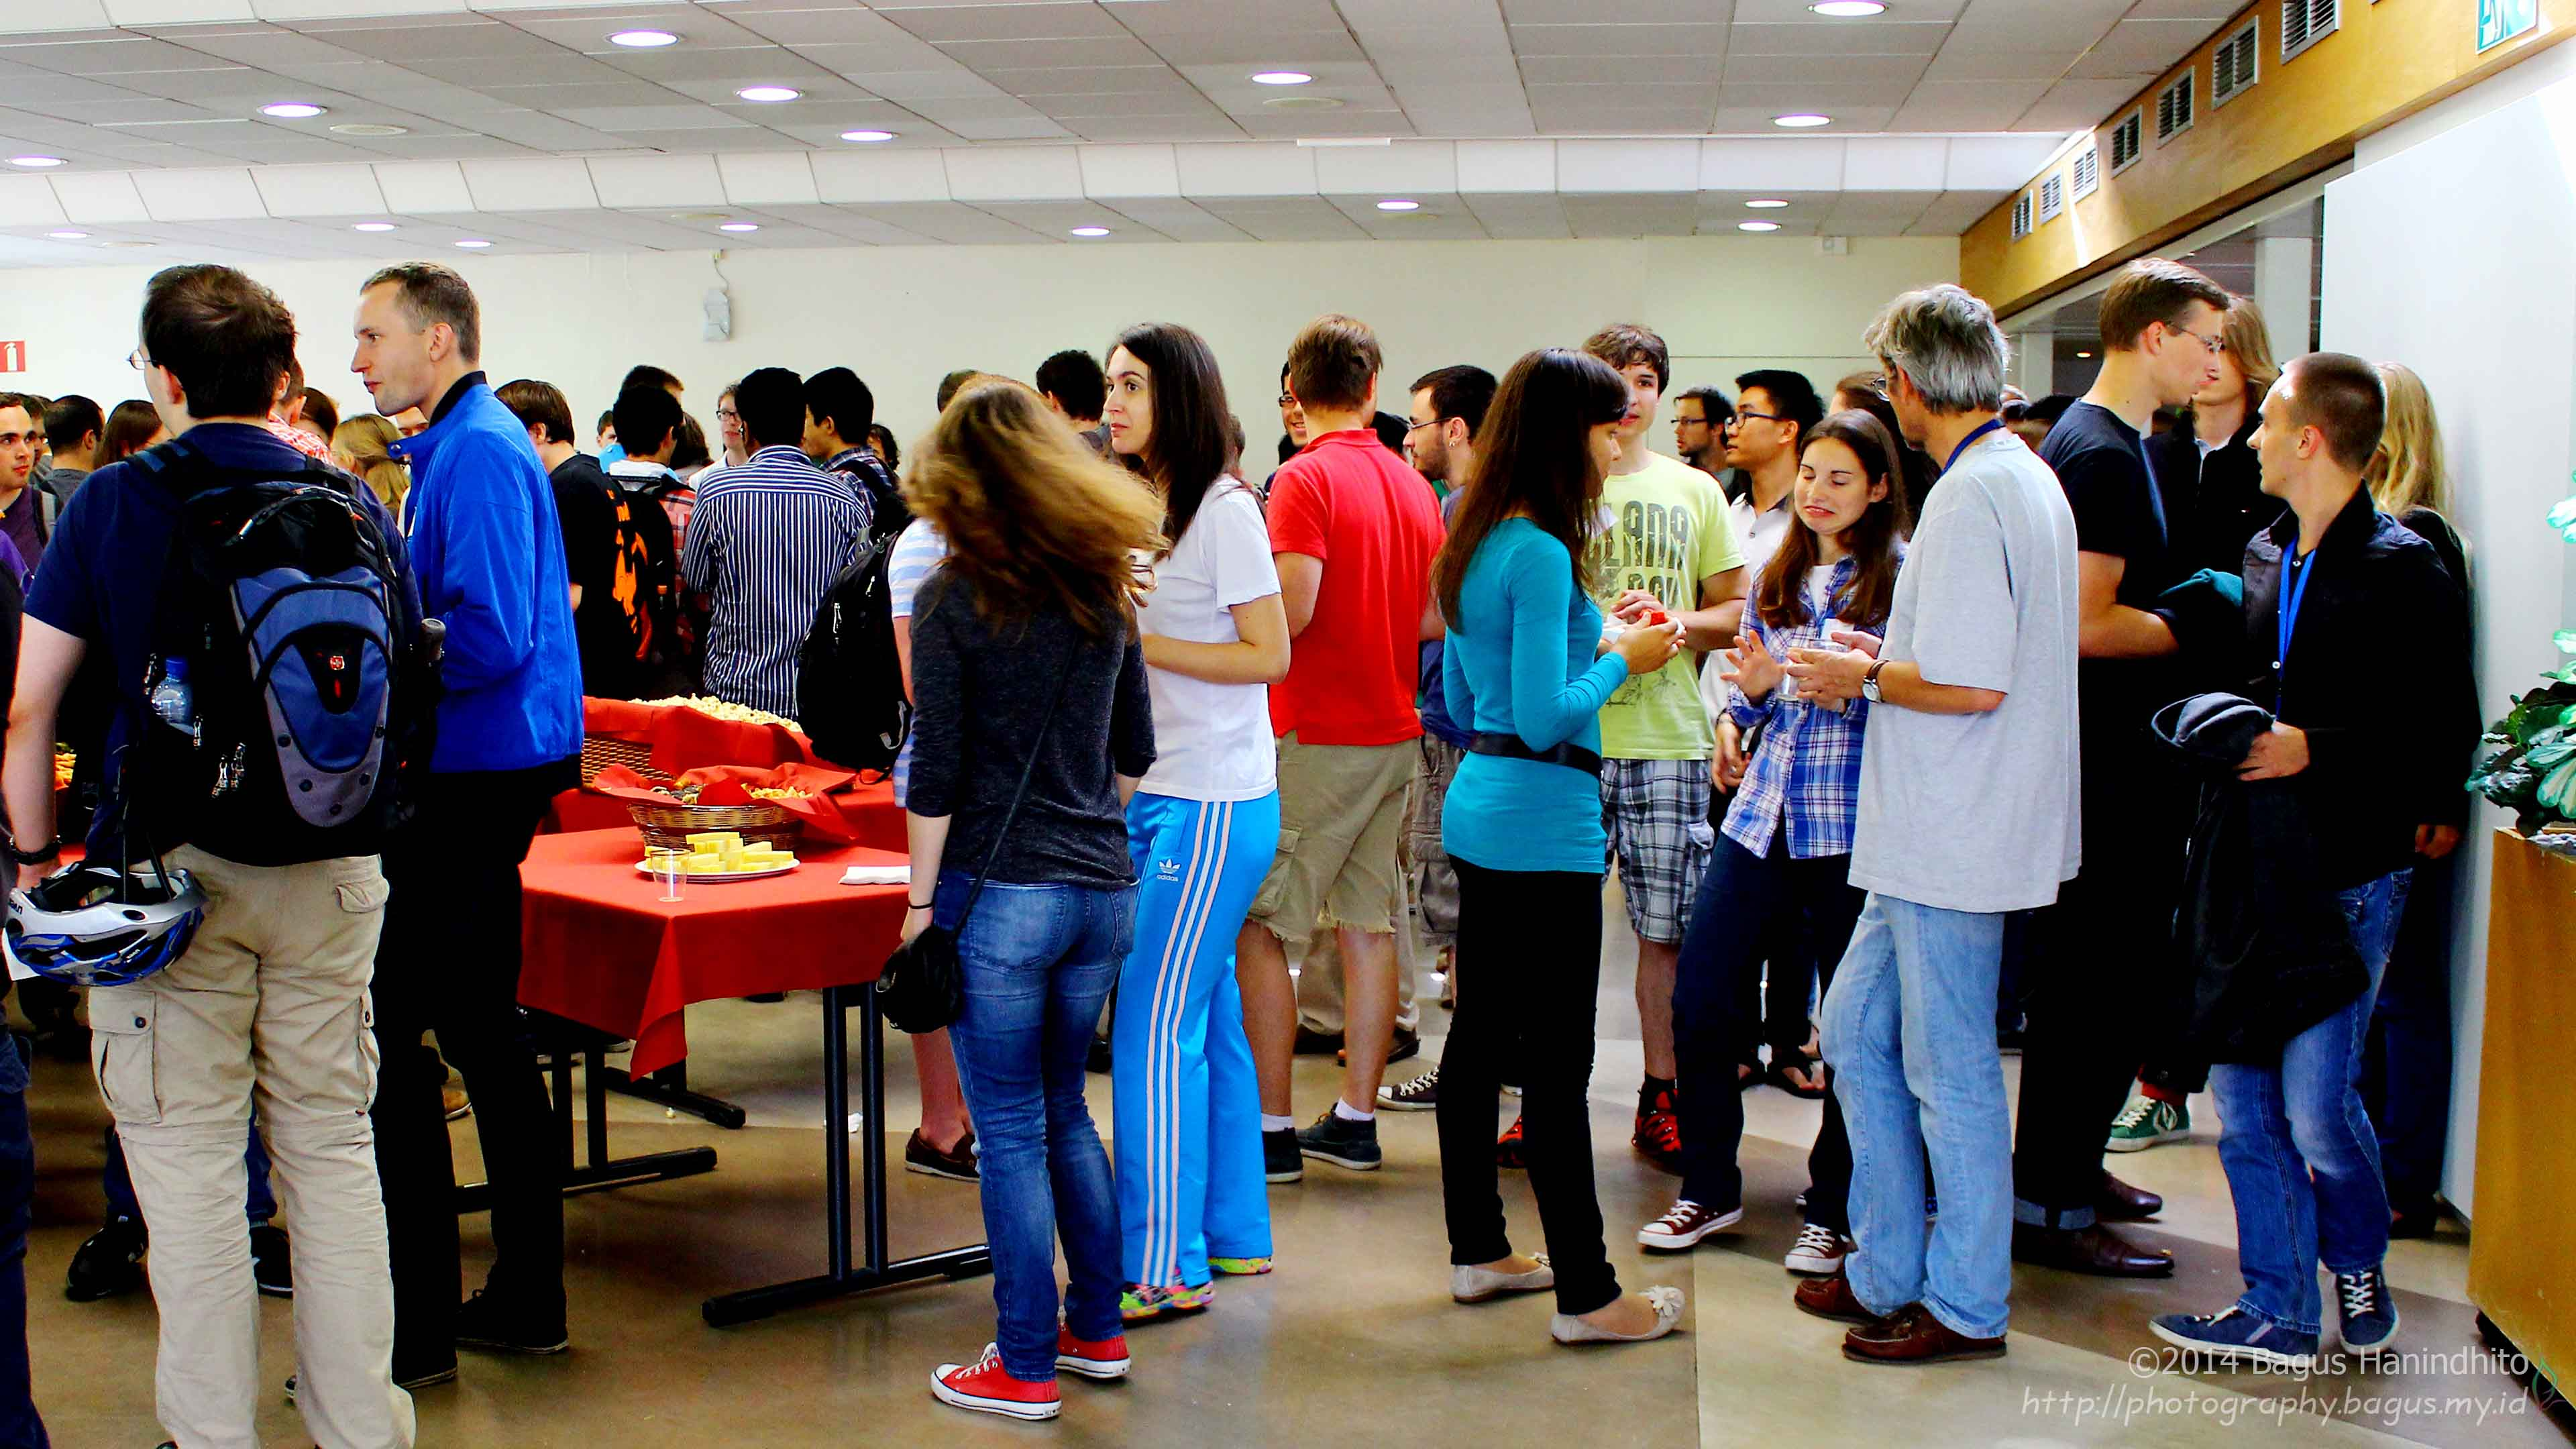 Welcome Party for Summer Student 2014 at CERN Restaurant.